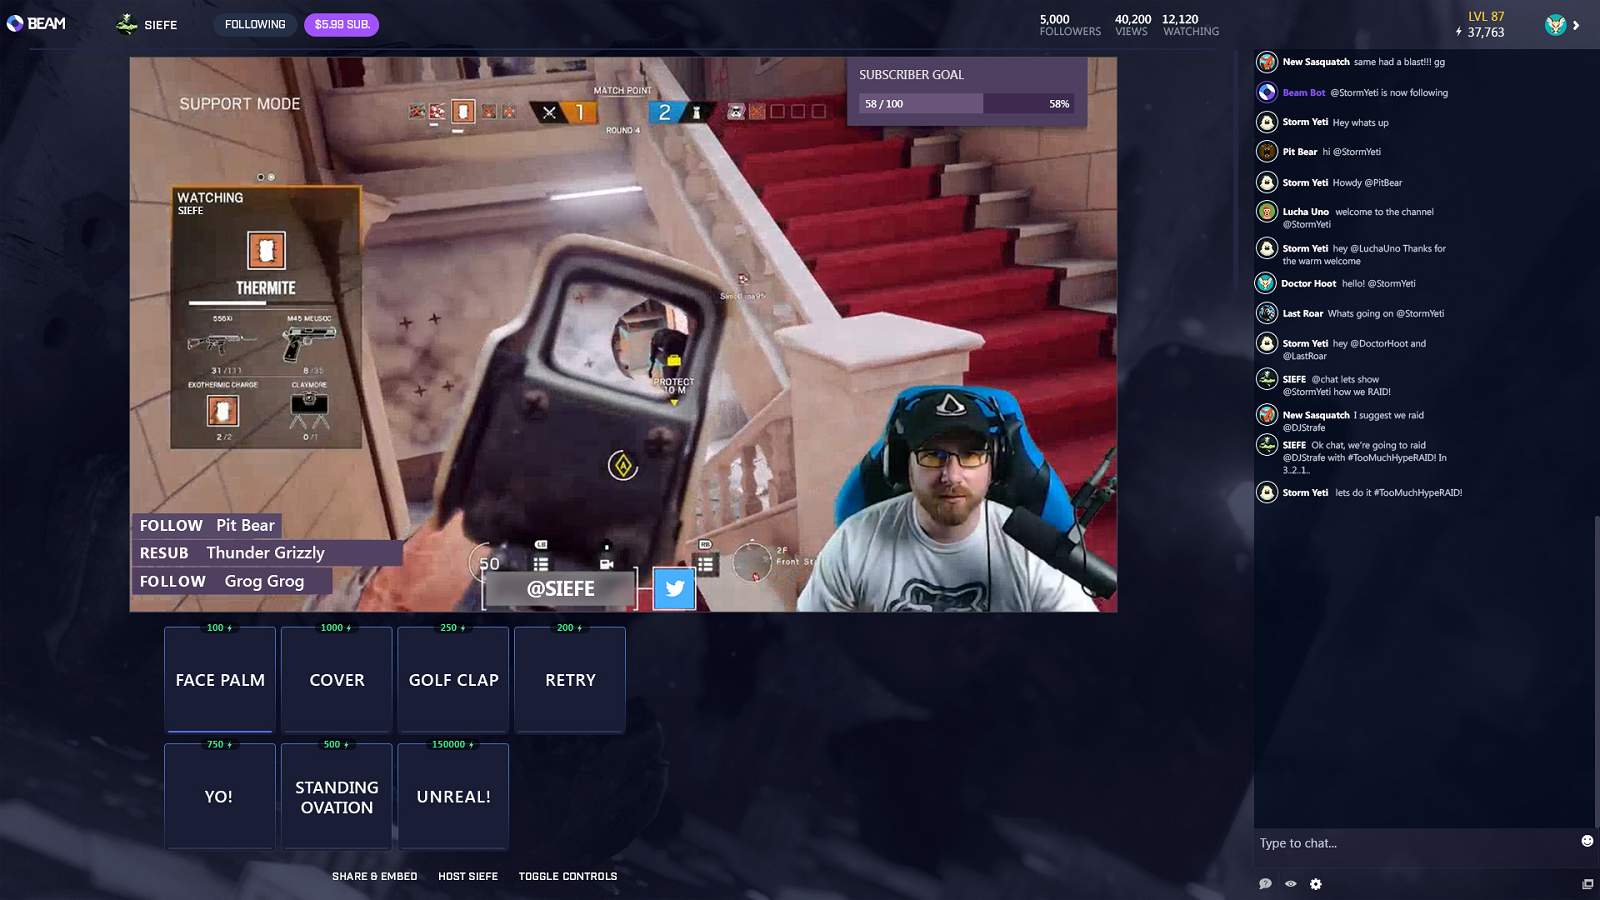 Microsoft's Beam game streaming app will be available for